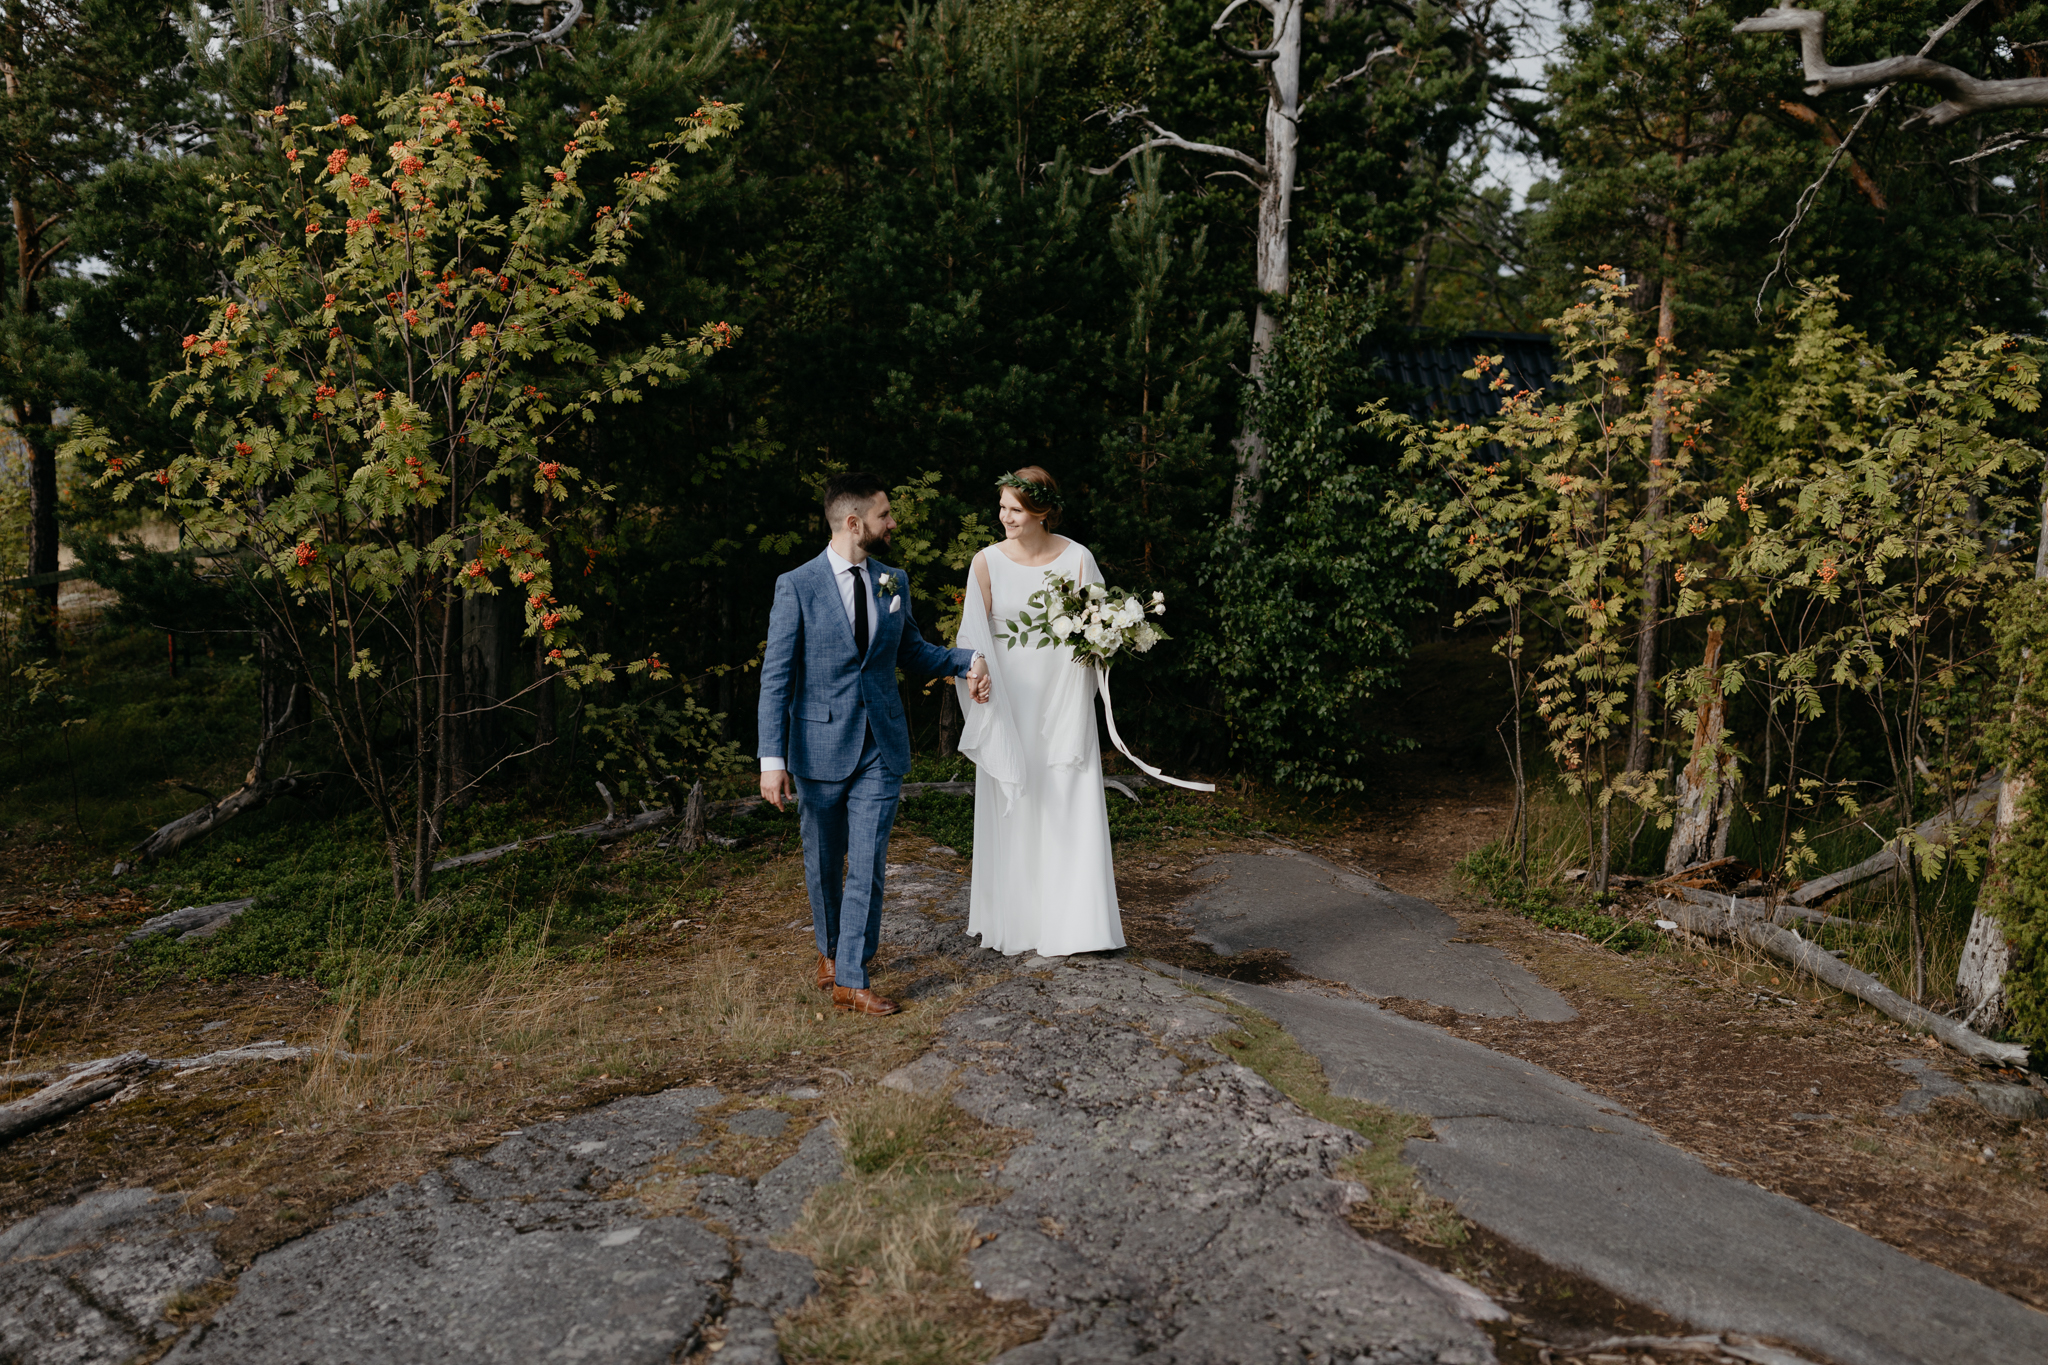 Vilhelmiina + Mark | Photo by Patrick Karkkolainen Wedding Photographer | Helsinki Wedding Photographer-114.jpg